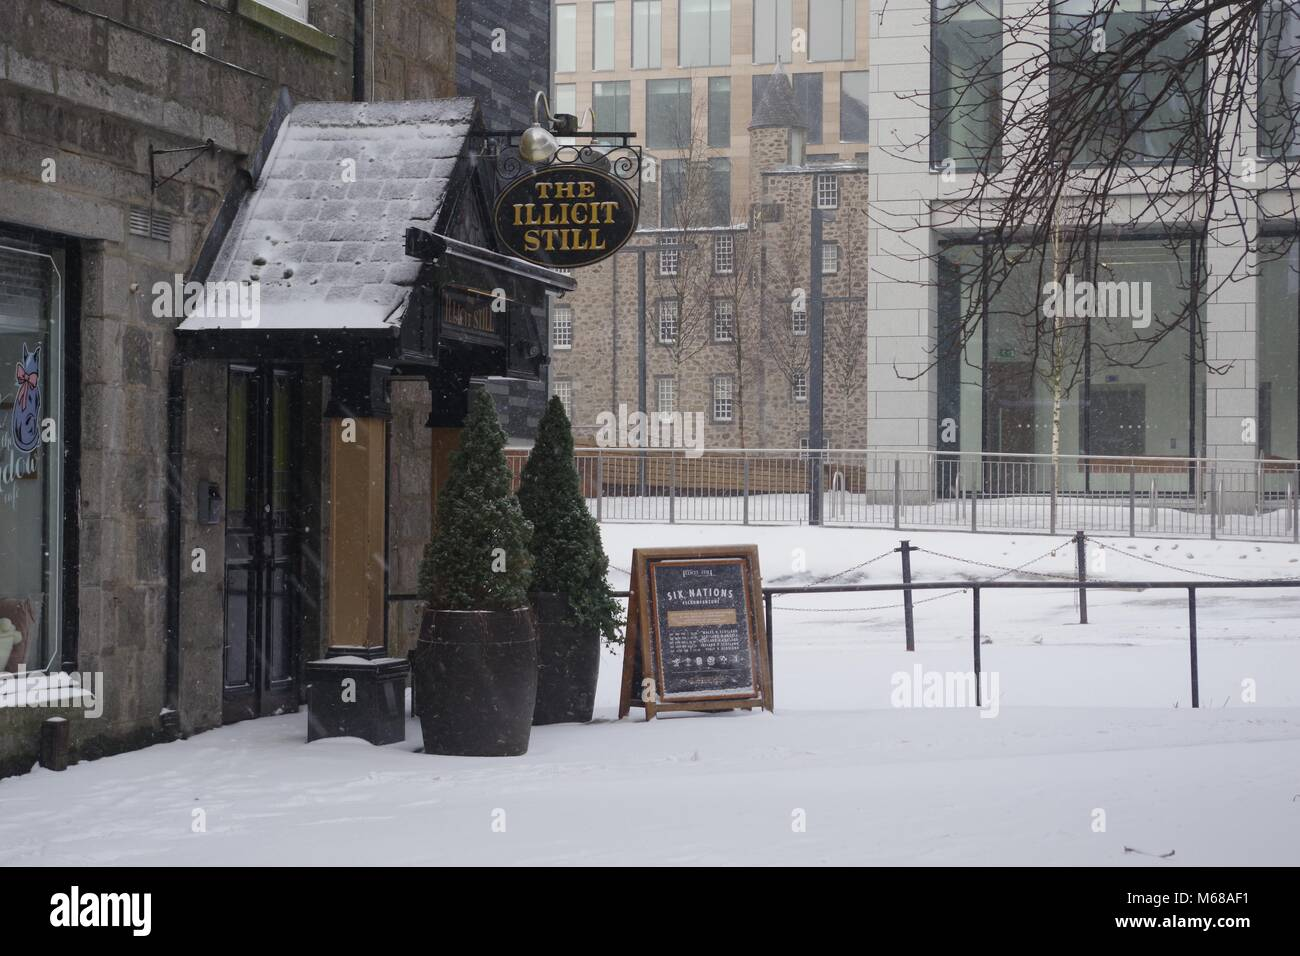 The Illicit Still Pub Porch, Scottish Pub. Beast from the East, Snow Storm Emma. Aberdeen, Scotland, UK. - Stock Image